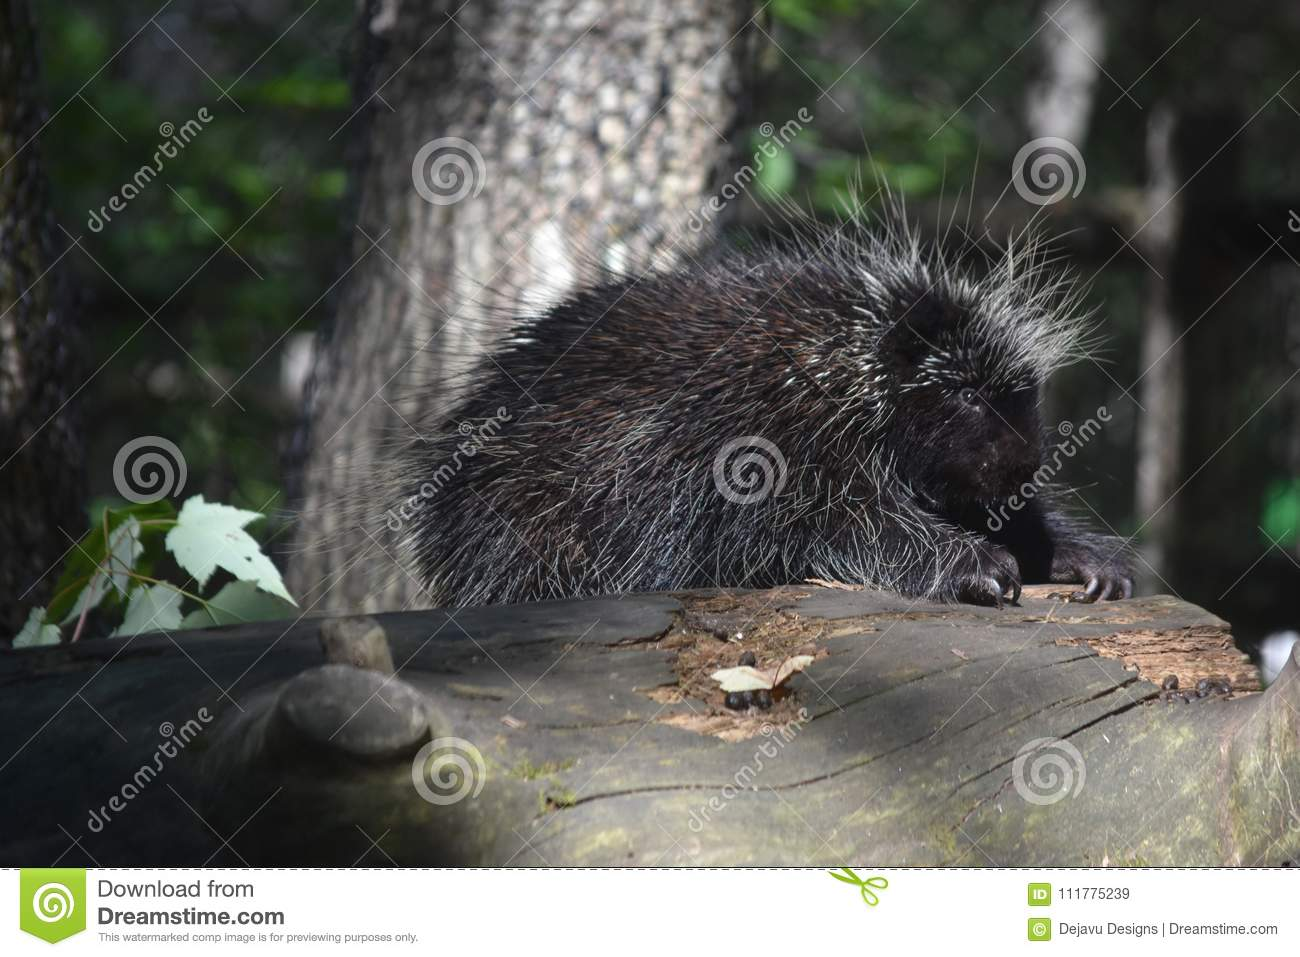 Beautiful porcupine with large black and white quills